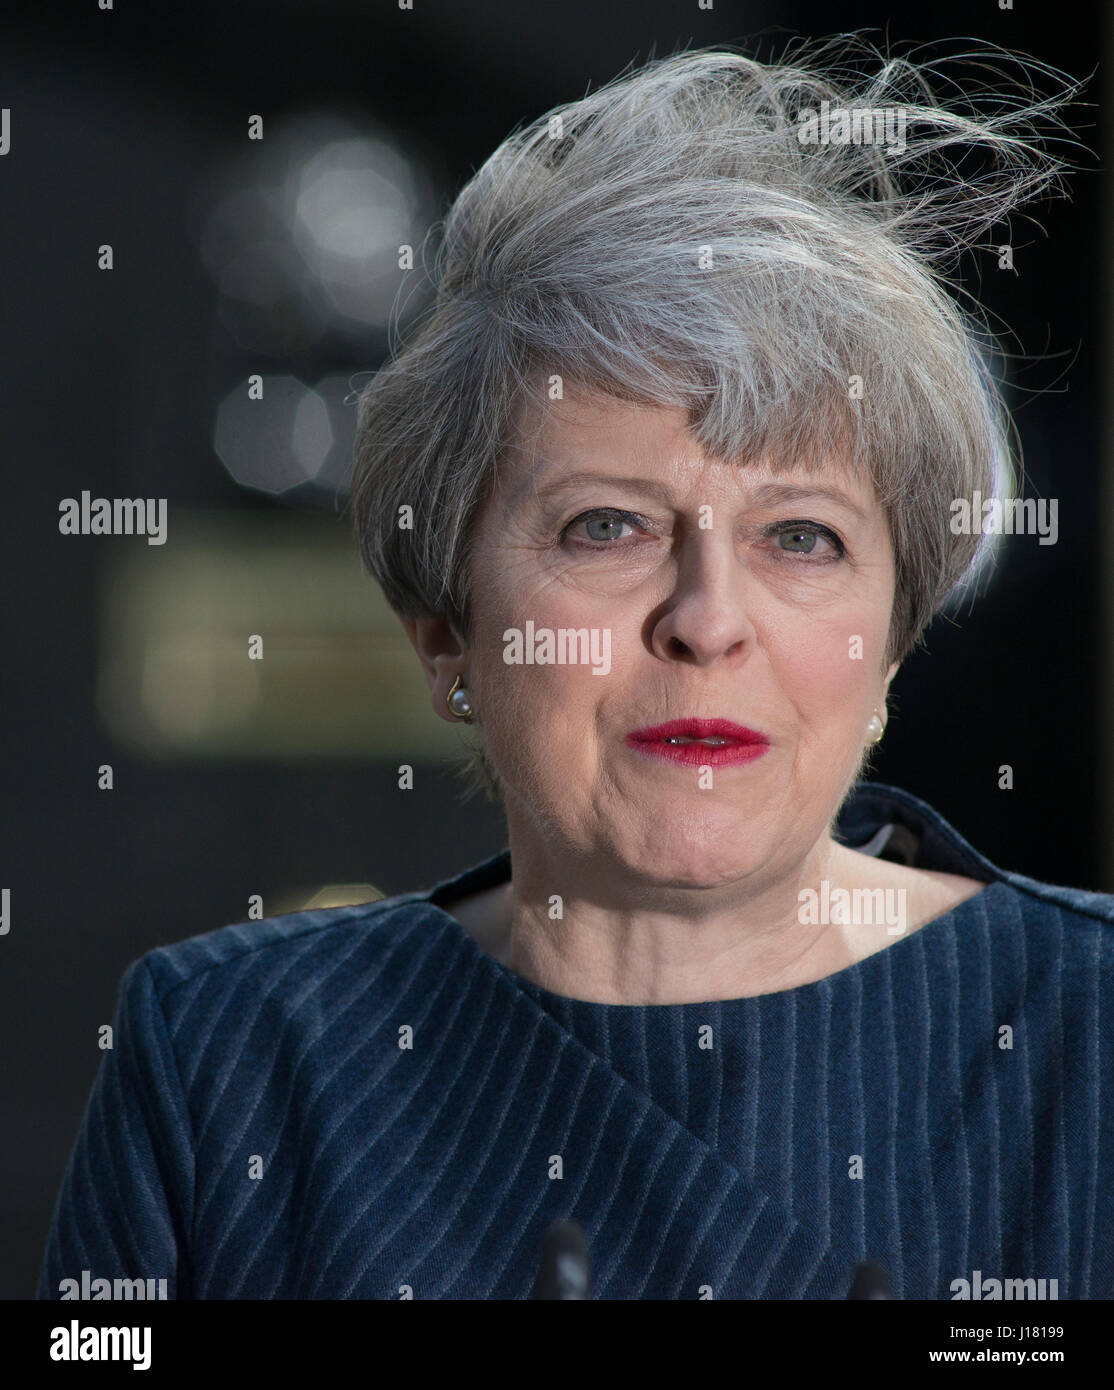 Downing Street, London UK. 18th April, 2017. PM Theresa May announces snap general election for 8th June 2017. Credit: - Stock Image